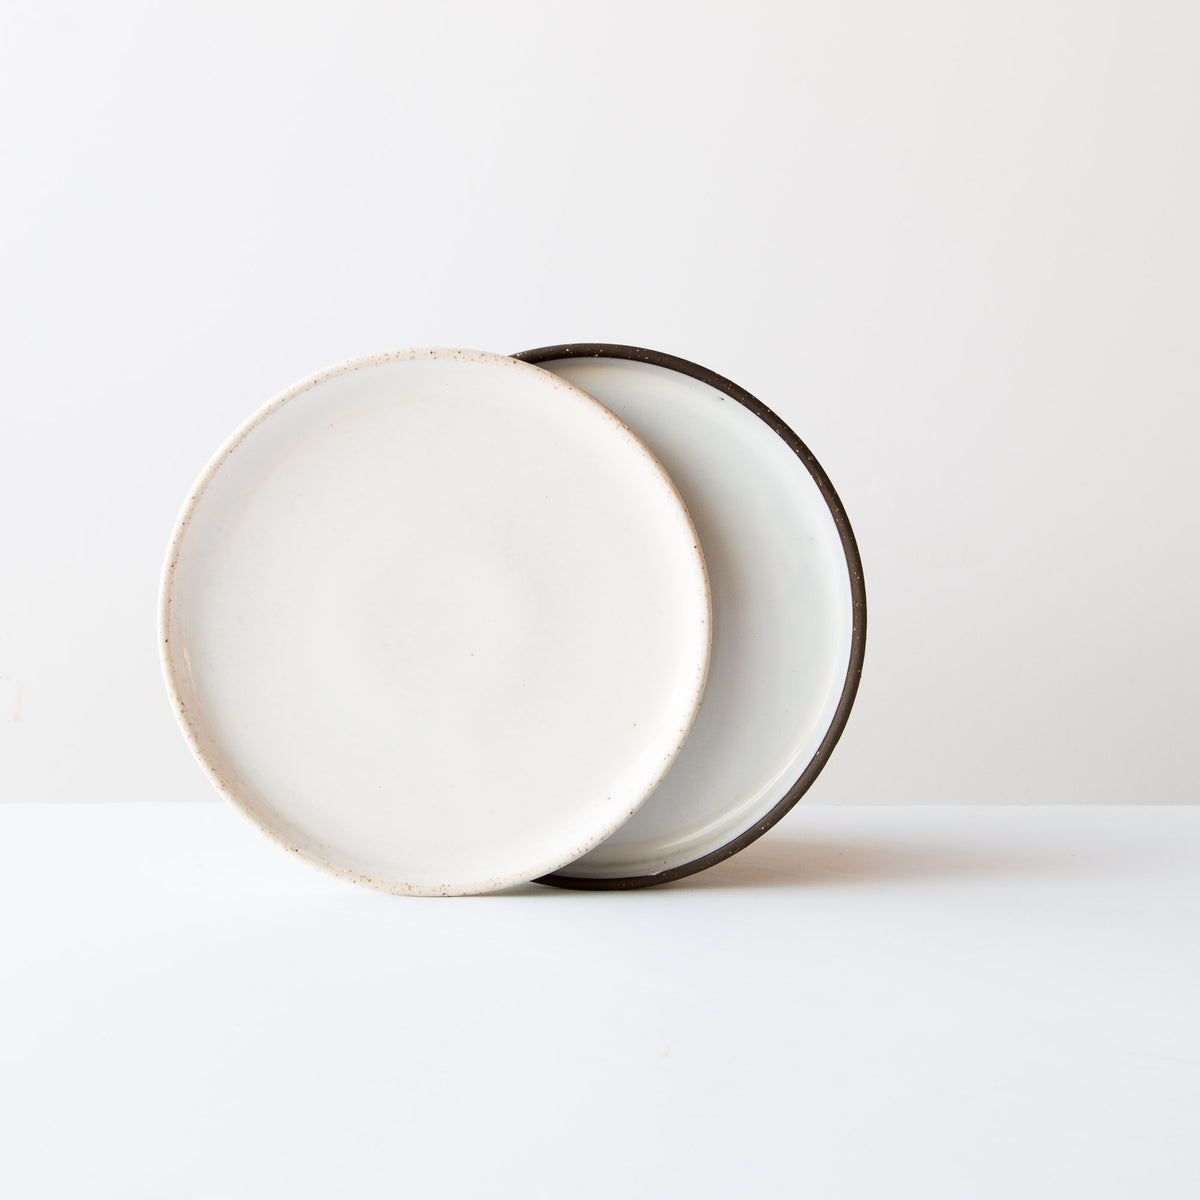 Atelier Trema - Grey & Oatmeal Small Ceramic Plate - Handmade in Quebec, Canada - Sold by Chic & Basta